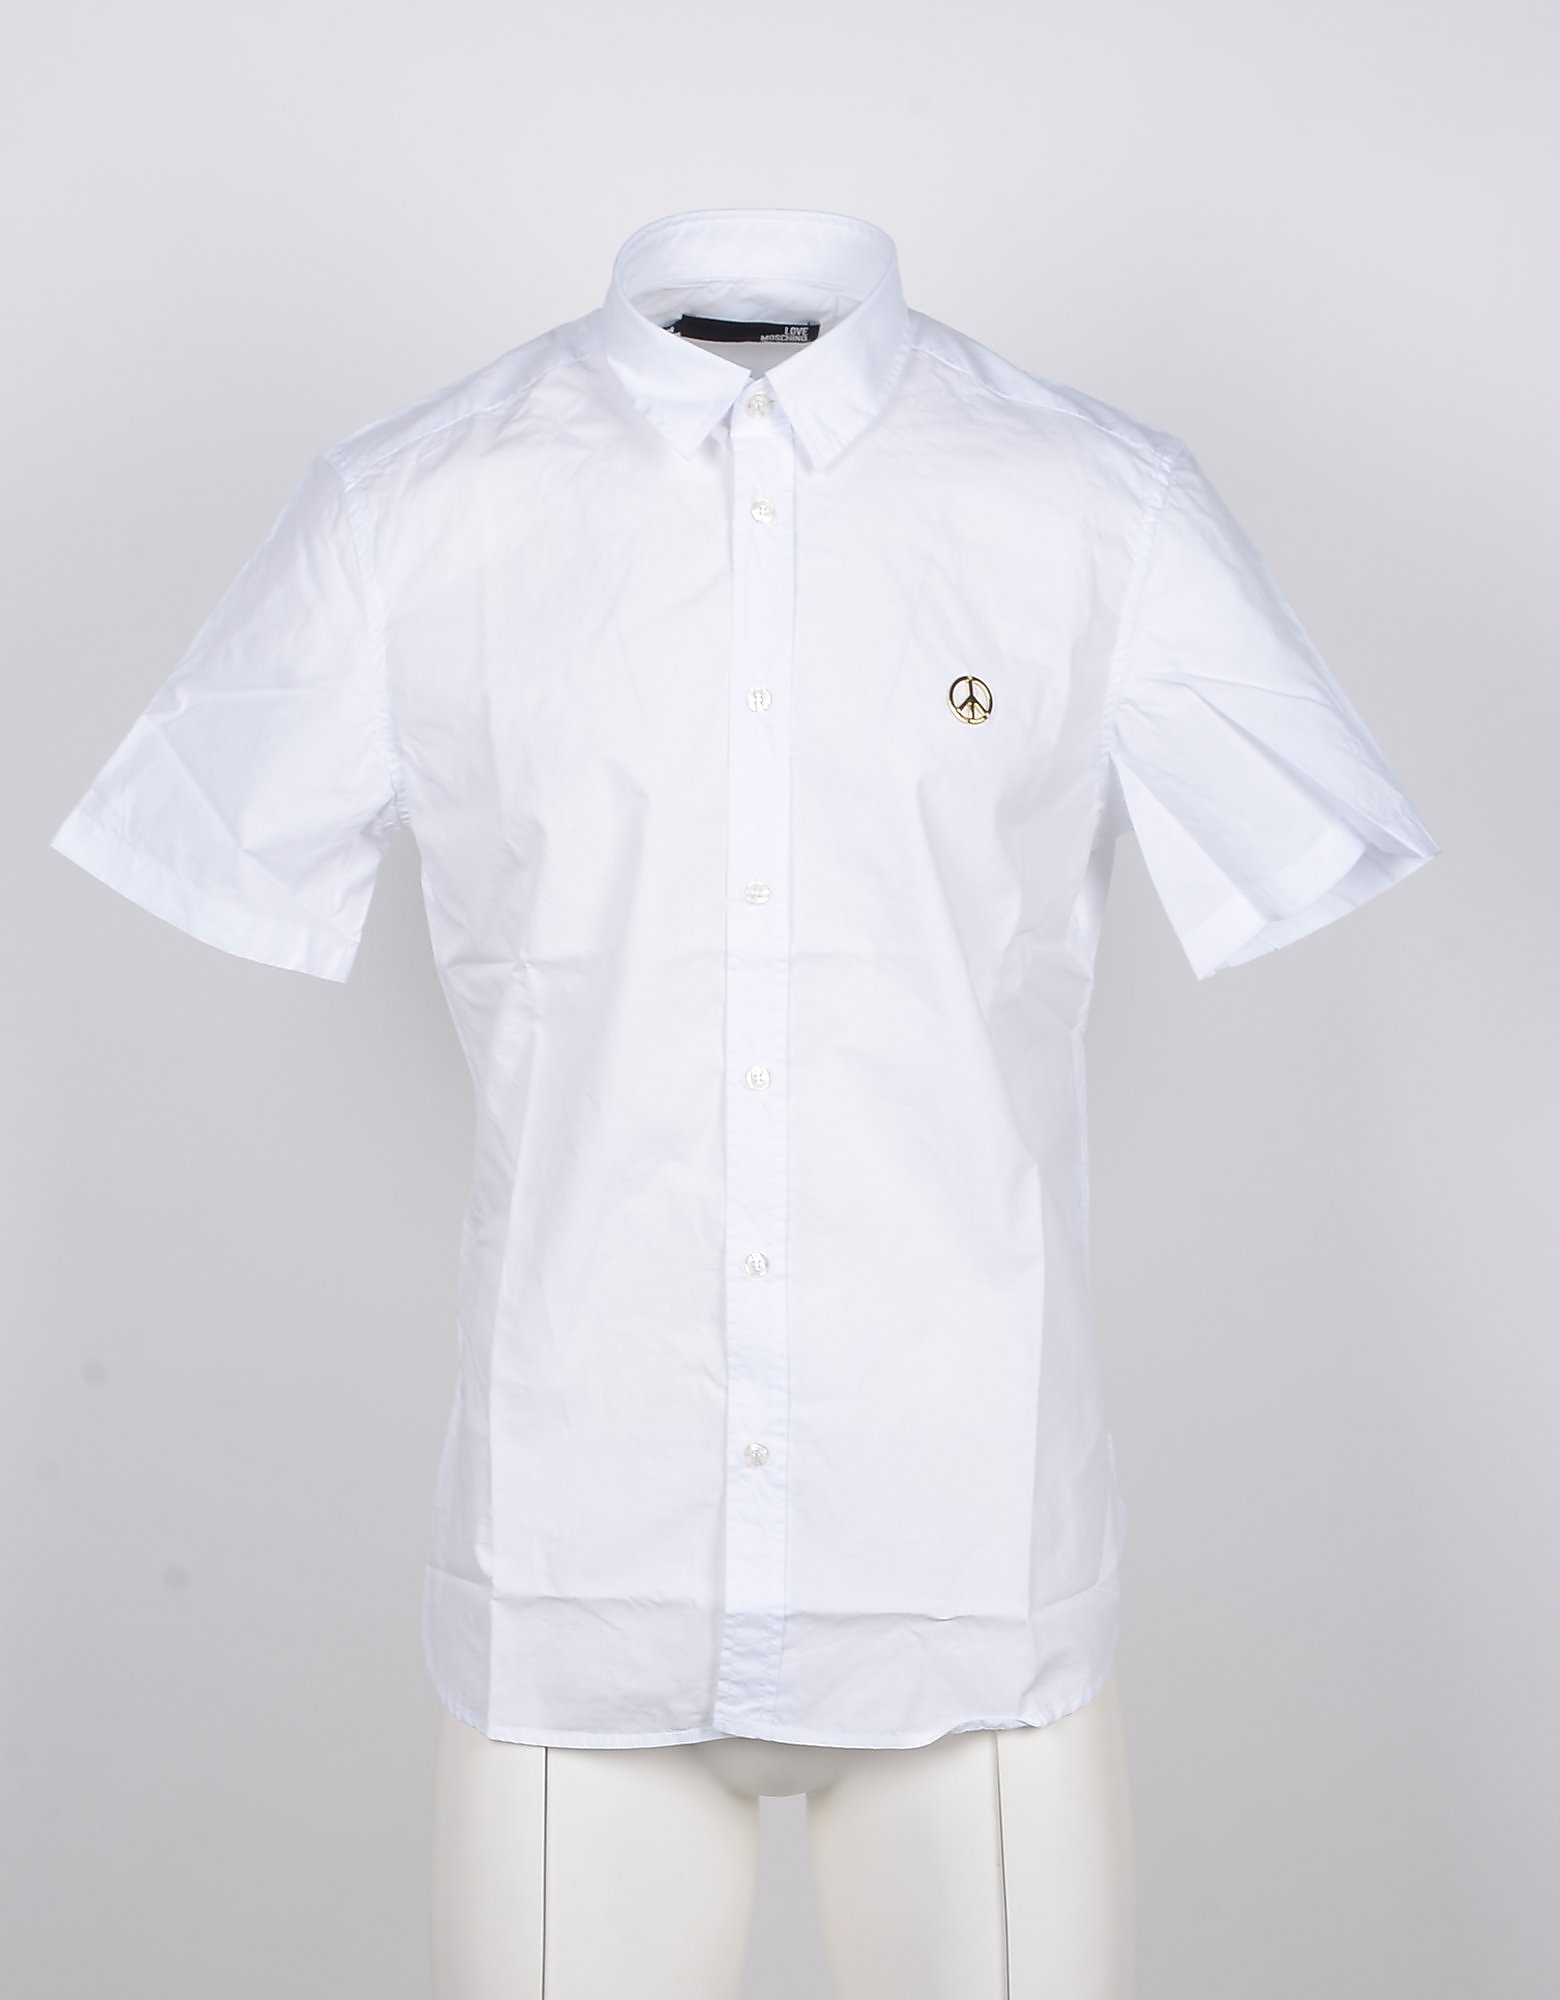 Love Moschino Designer Shirts, Short-Sleeved White Cotton Men's Shirt